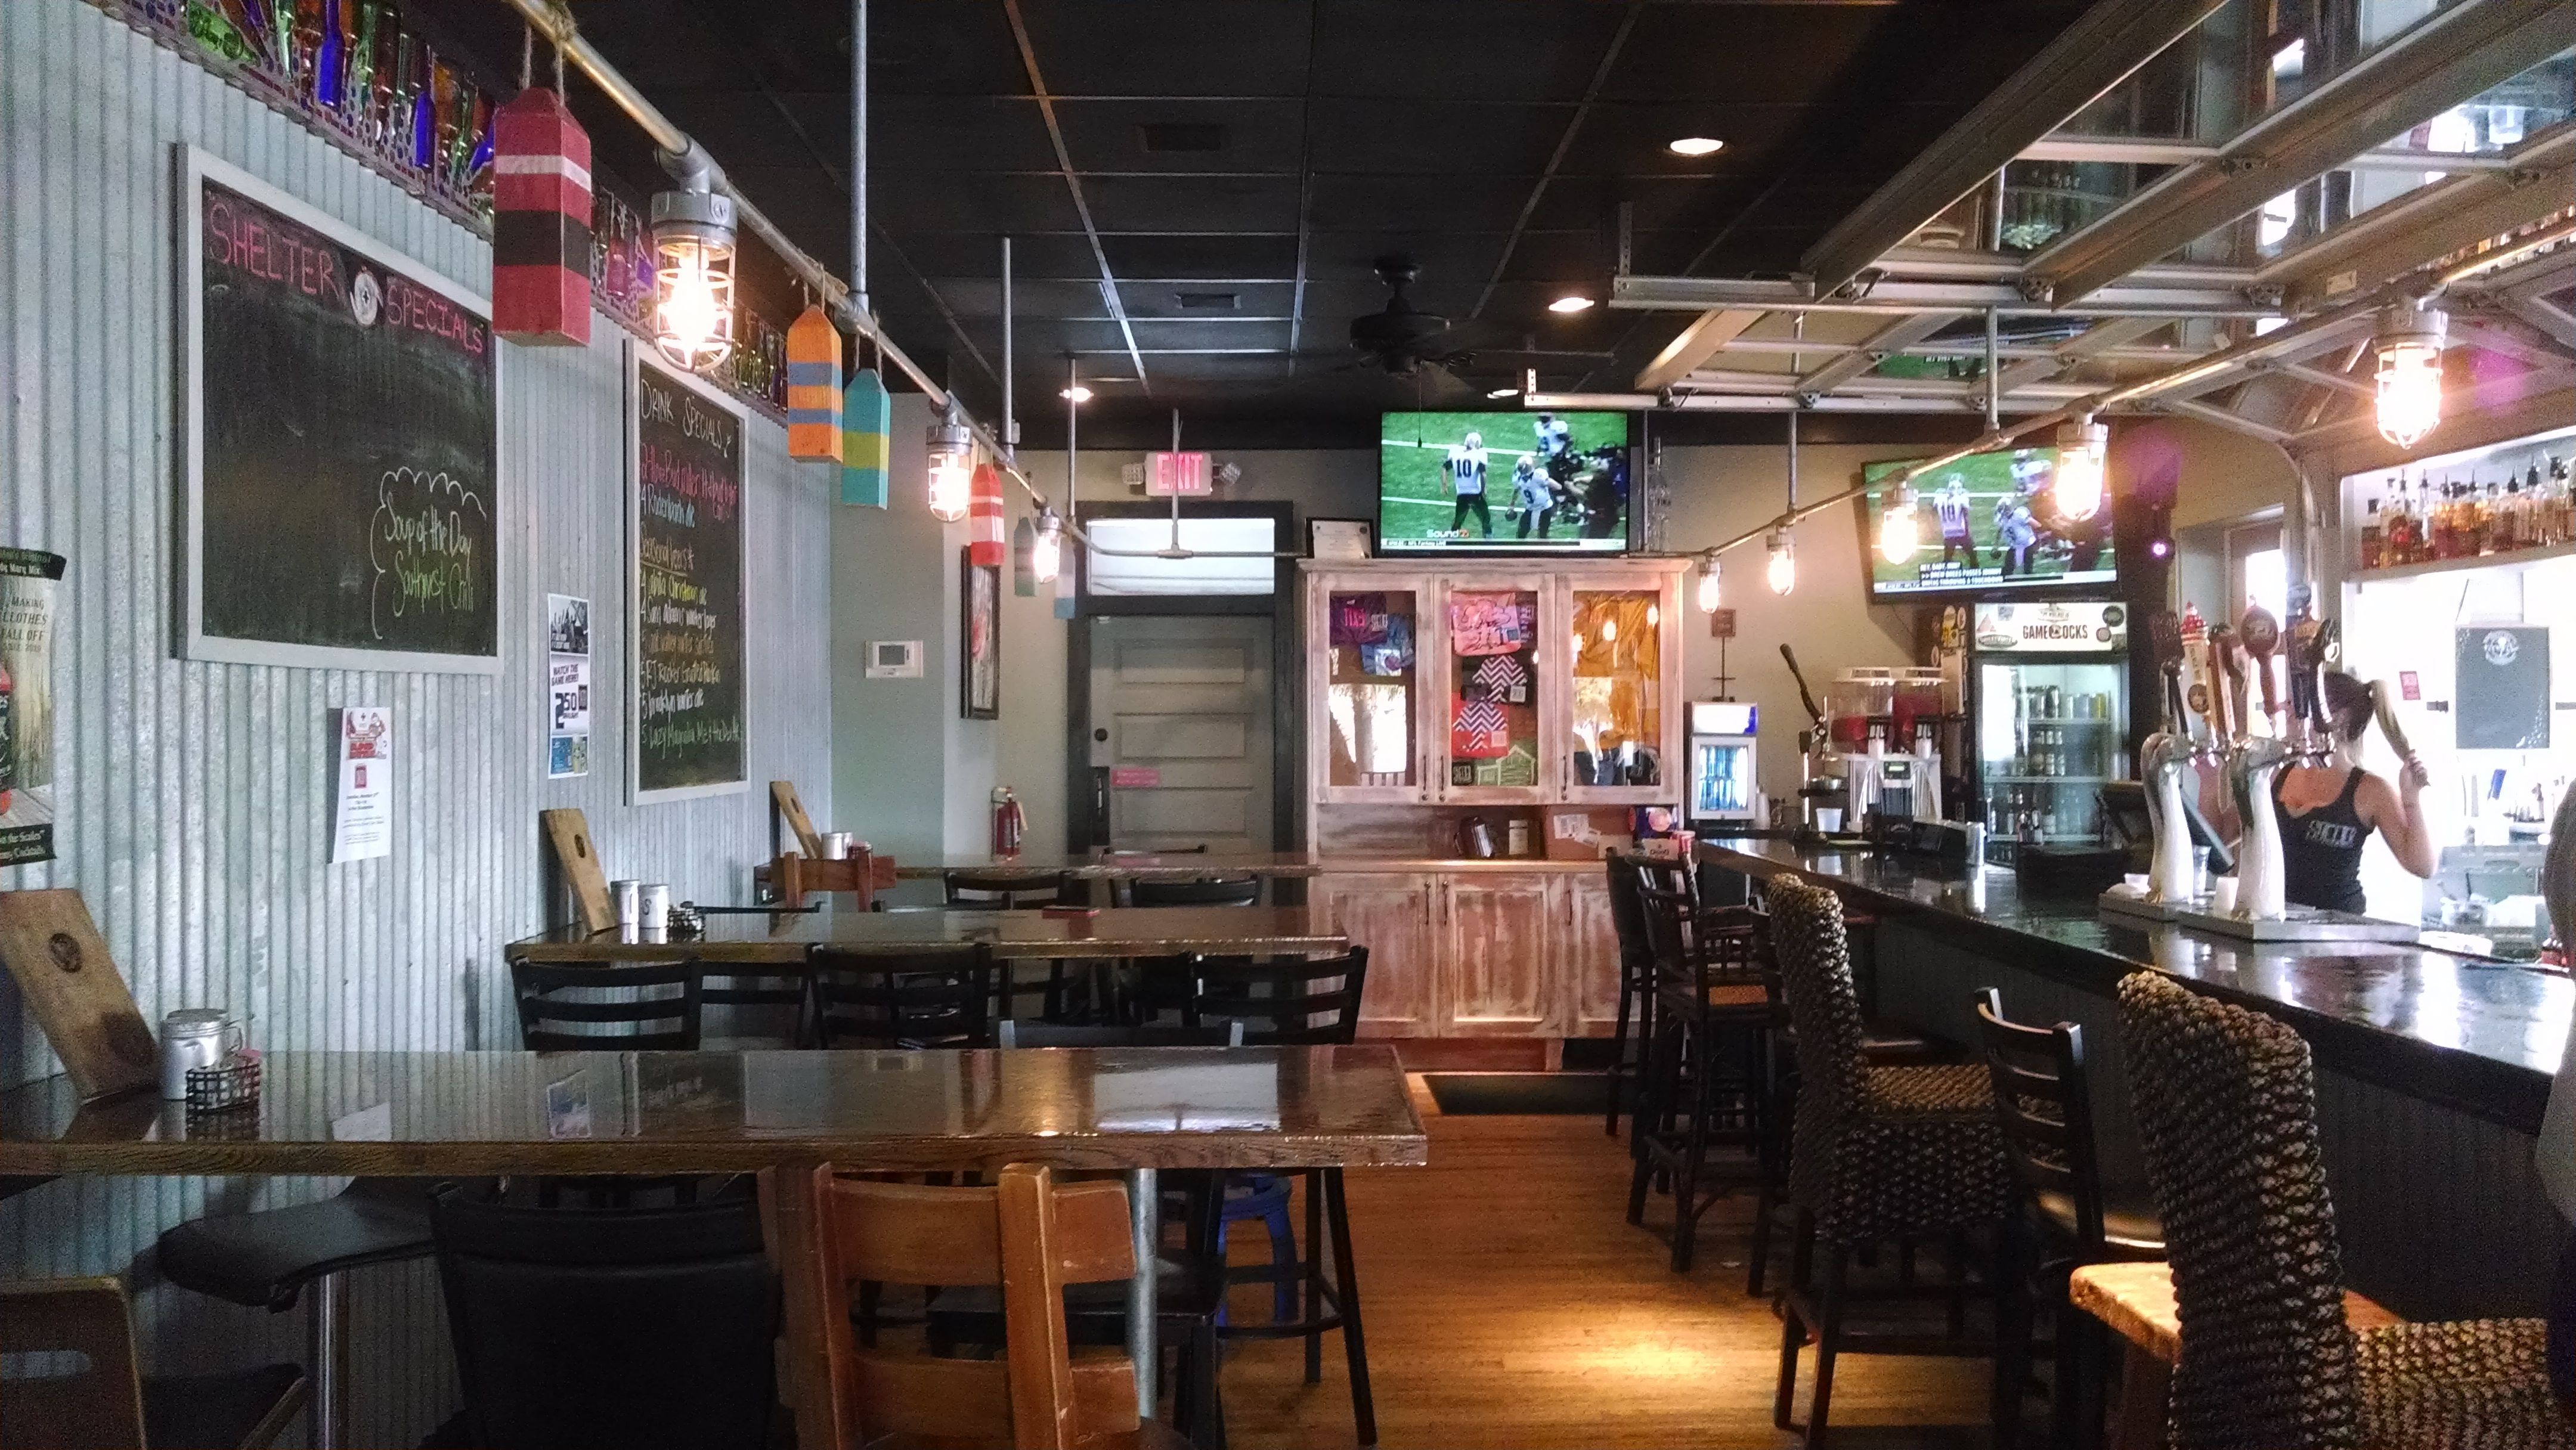 Home The Shelter Kitchen And Bar Explore Charleston Home Decor Home